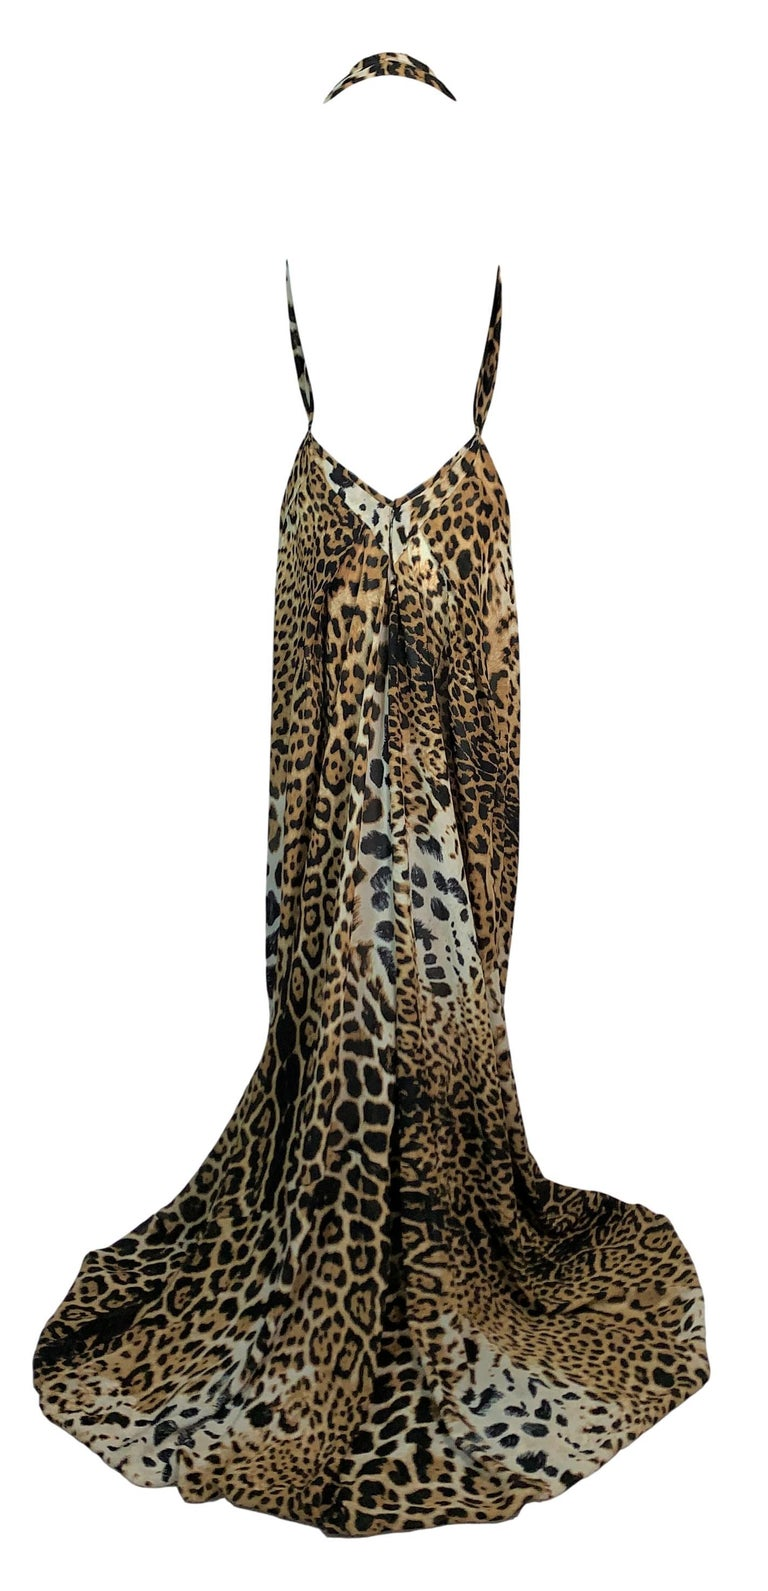 Black S/S 2002 Yves Saint Laurent Tom Ford Sheer Leopard Silk Plunging Gown Dress For Sale